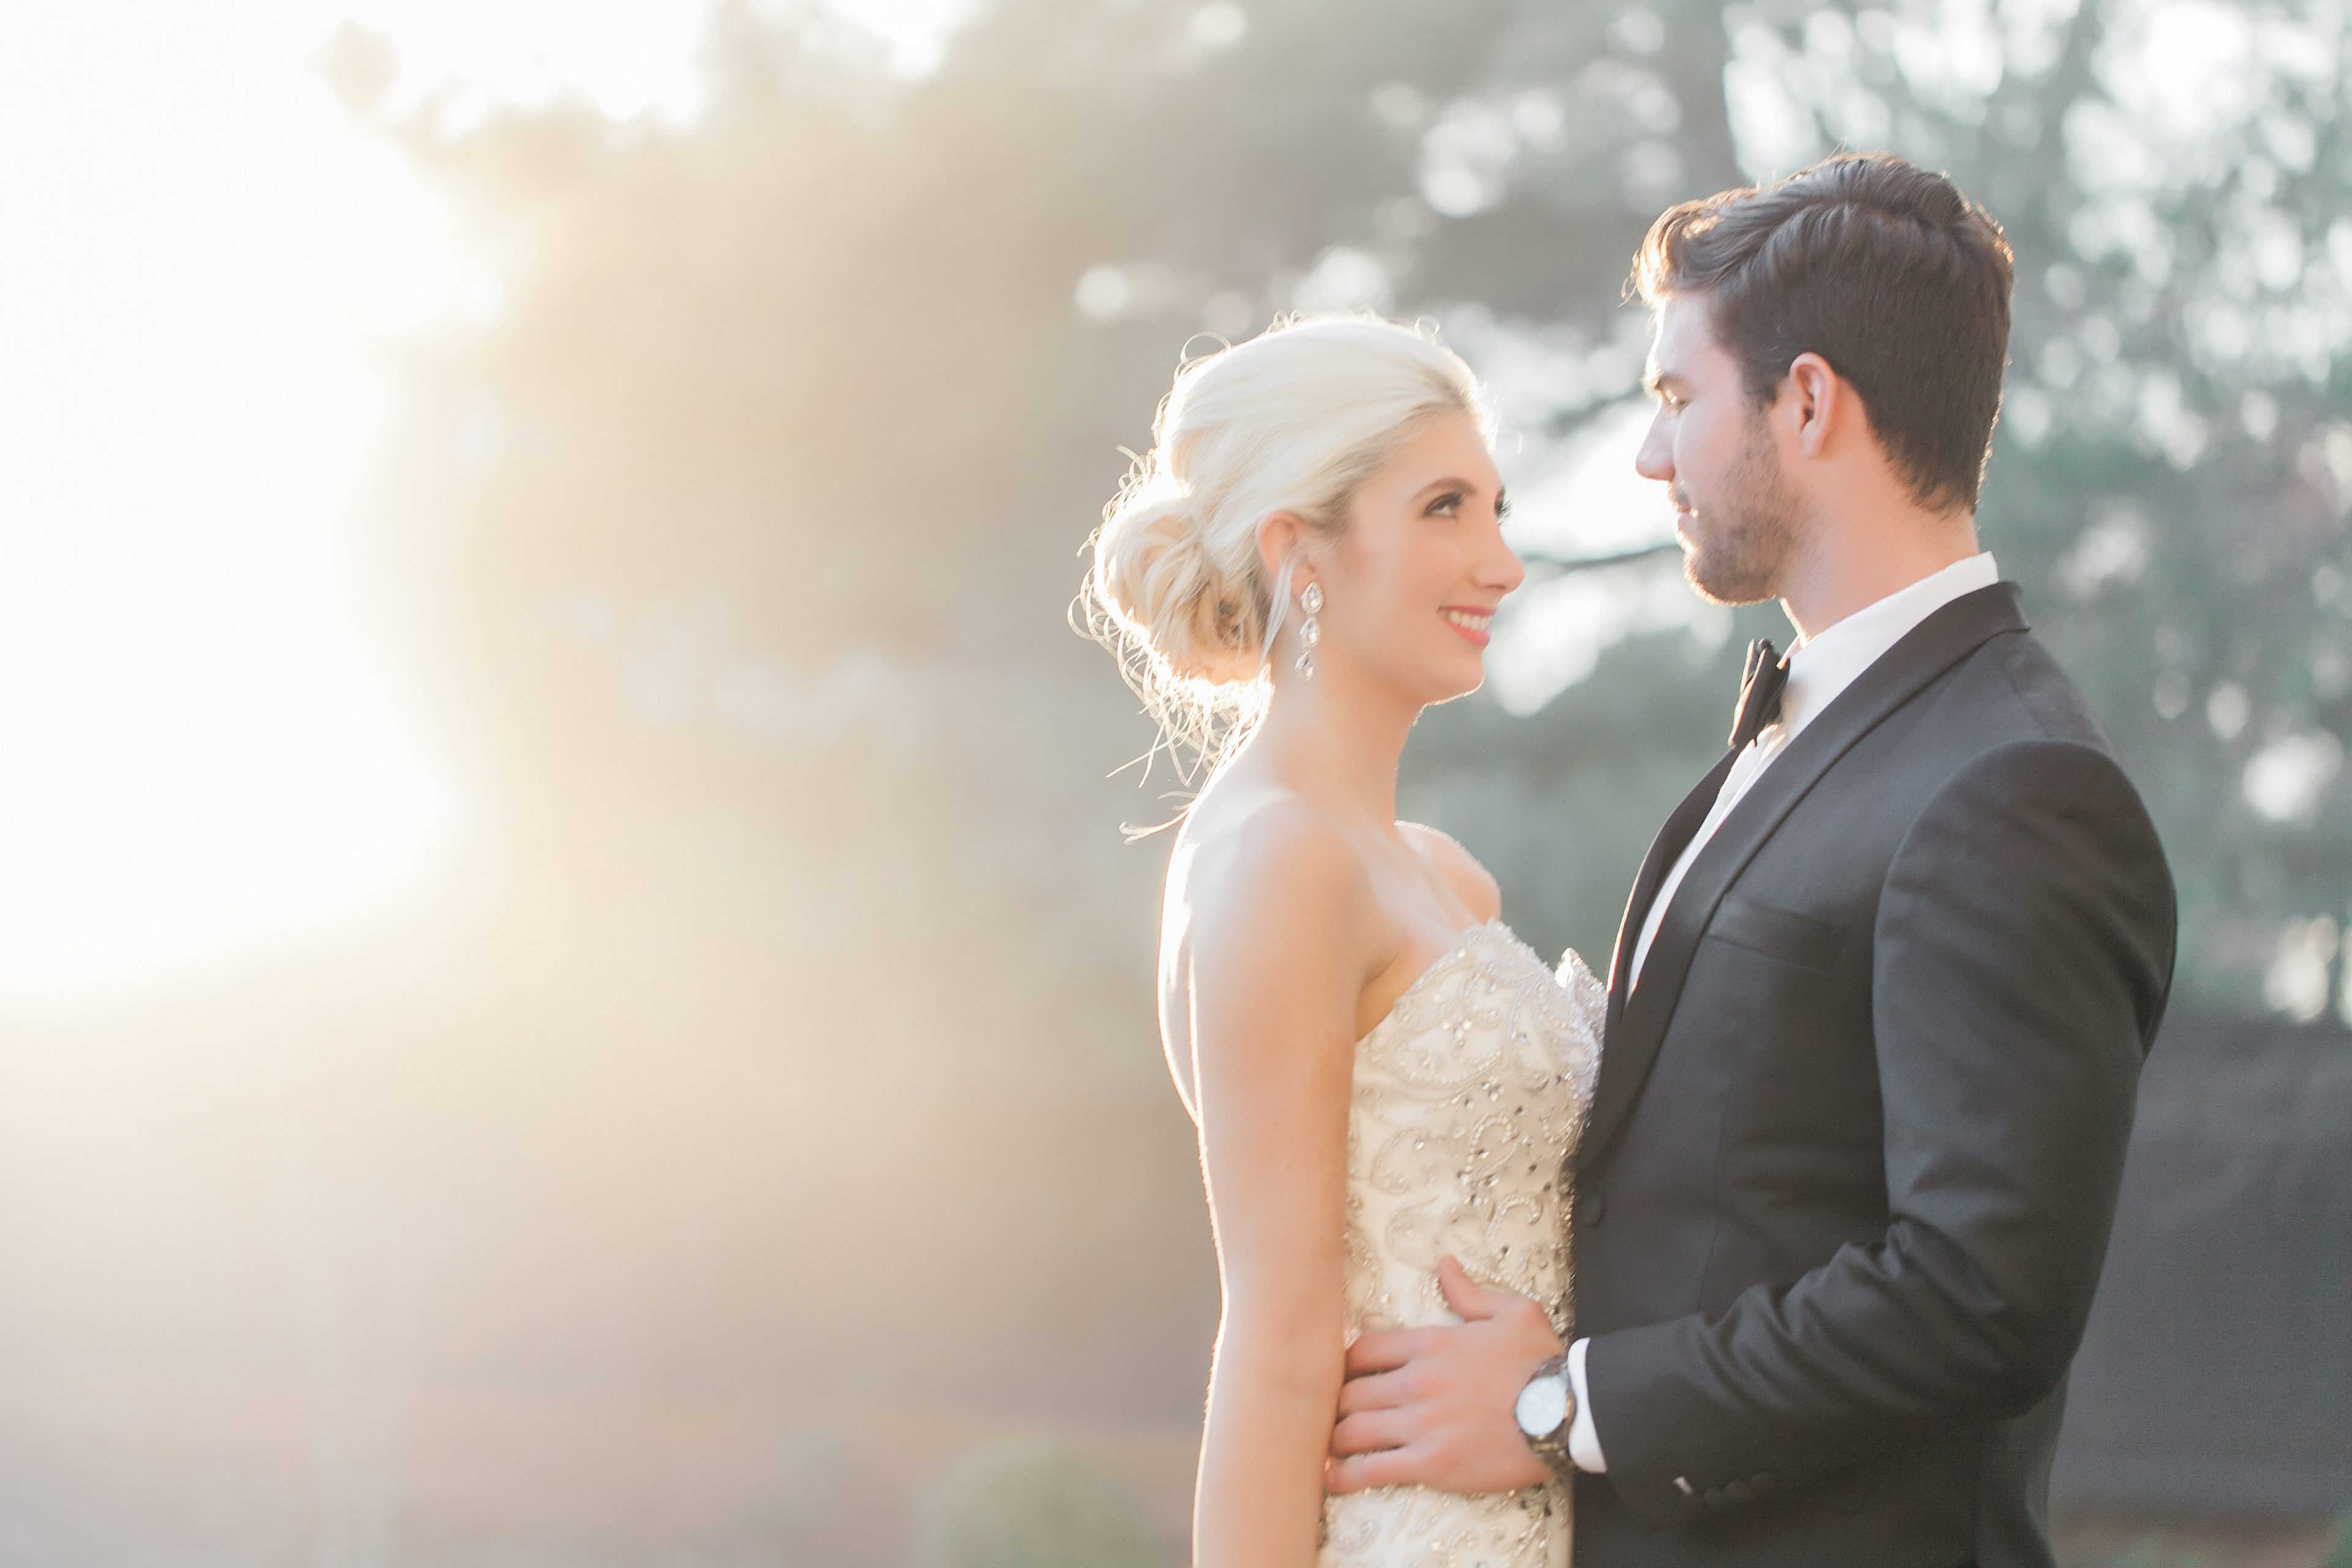 Bride and groom embrace before wedding at the Separk Mansion captured by Casey Hendrickson Photography